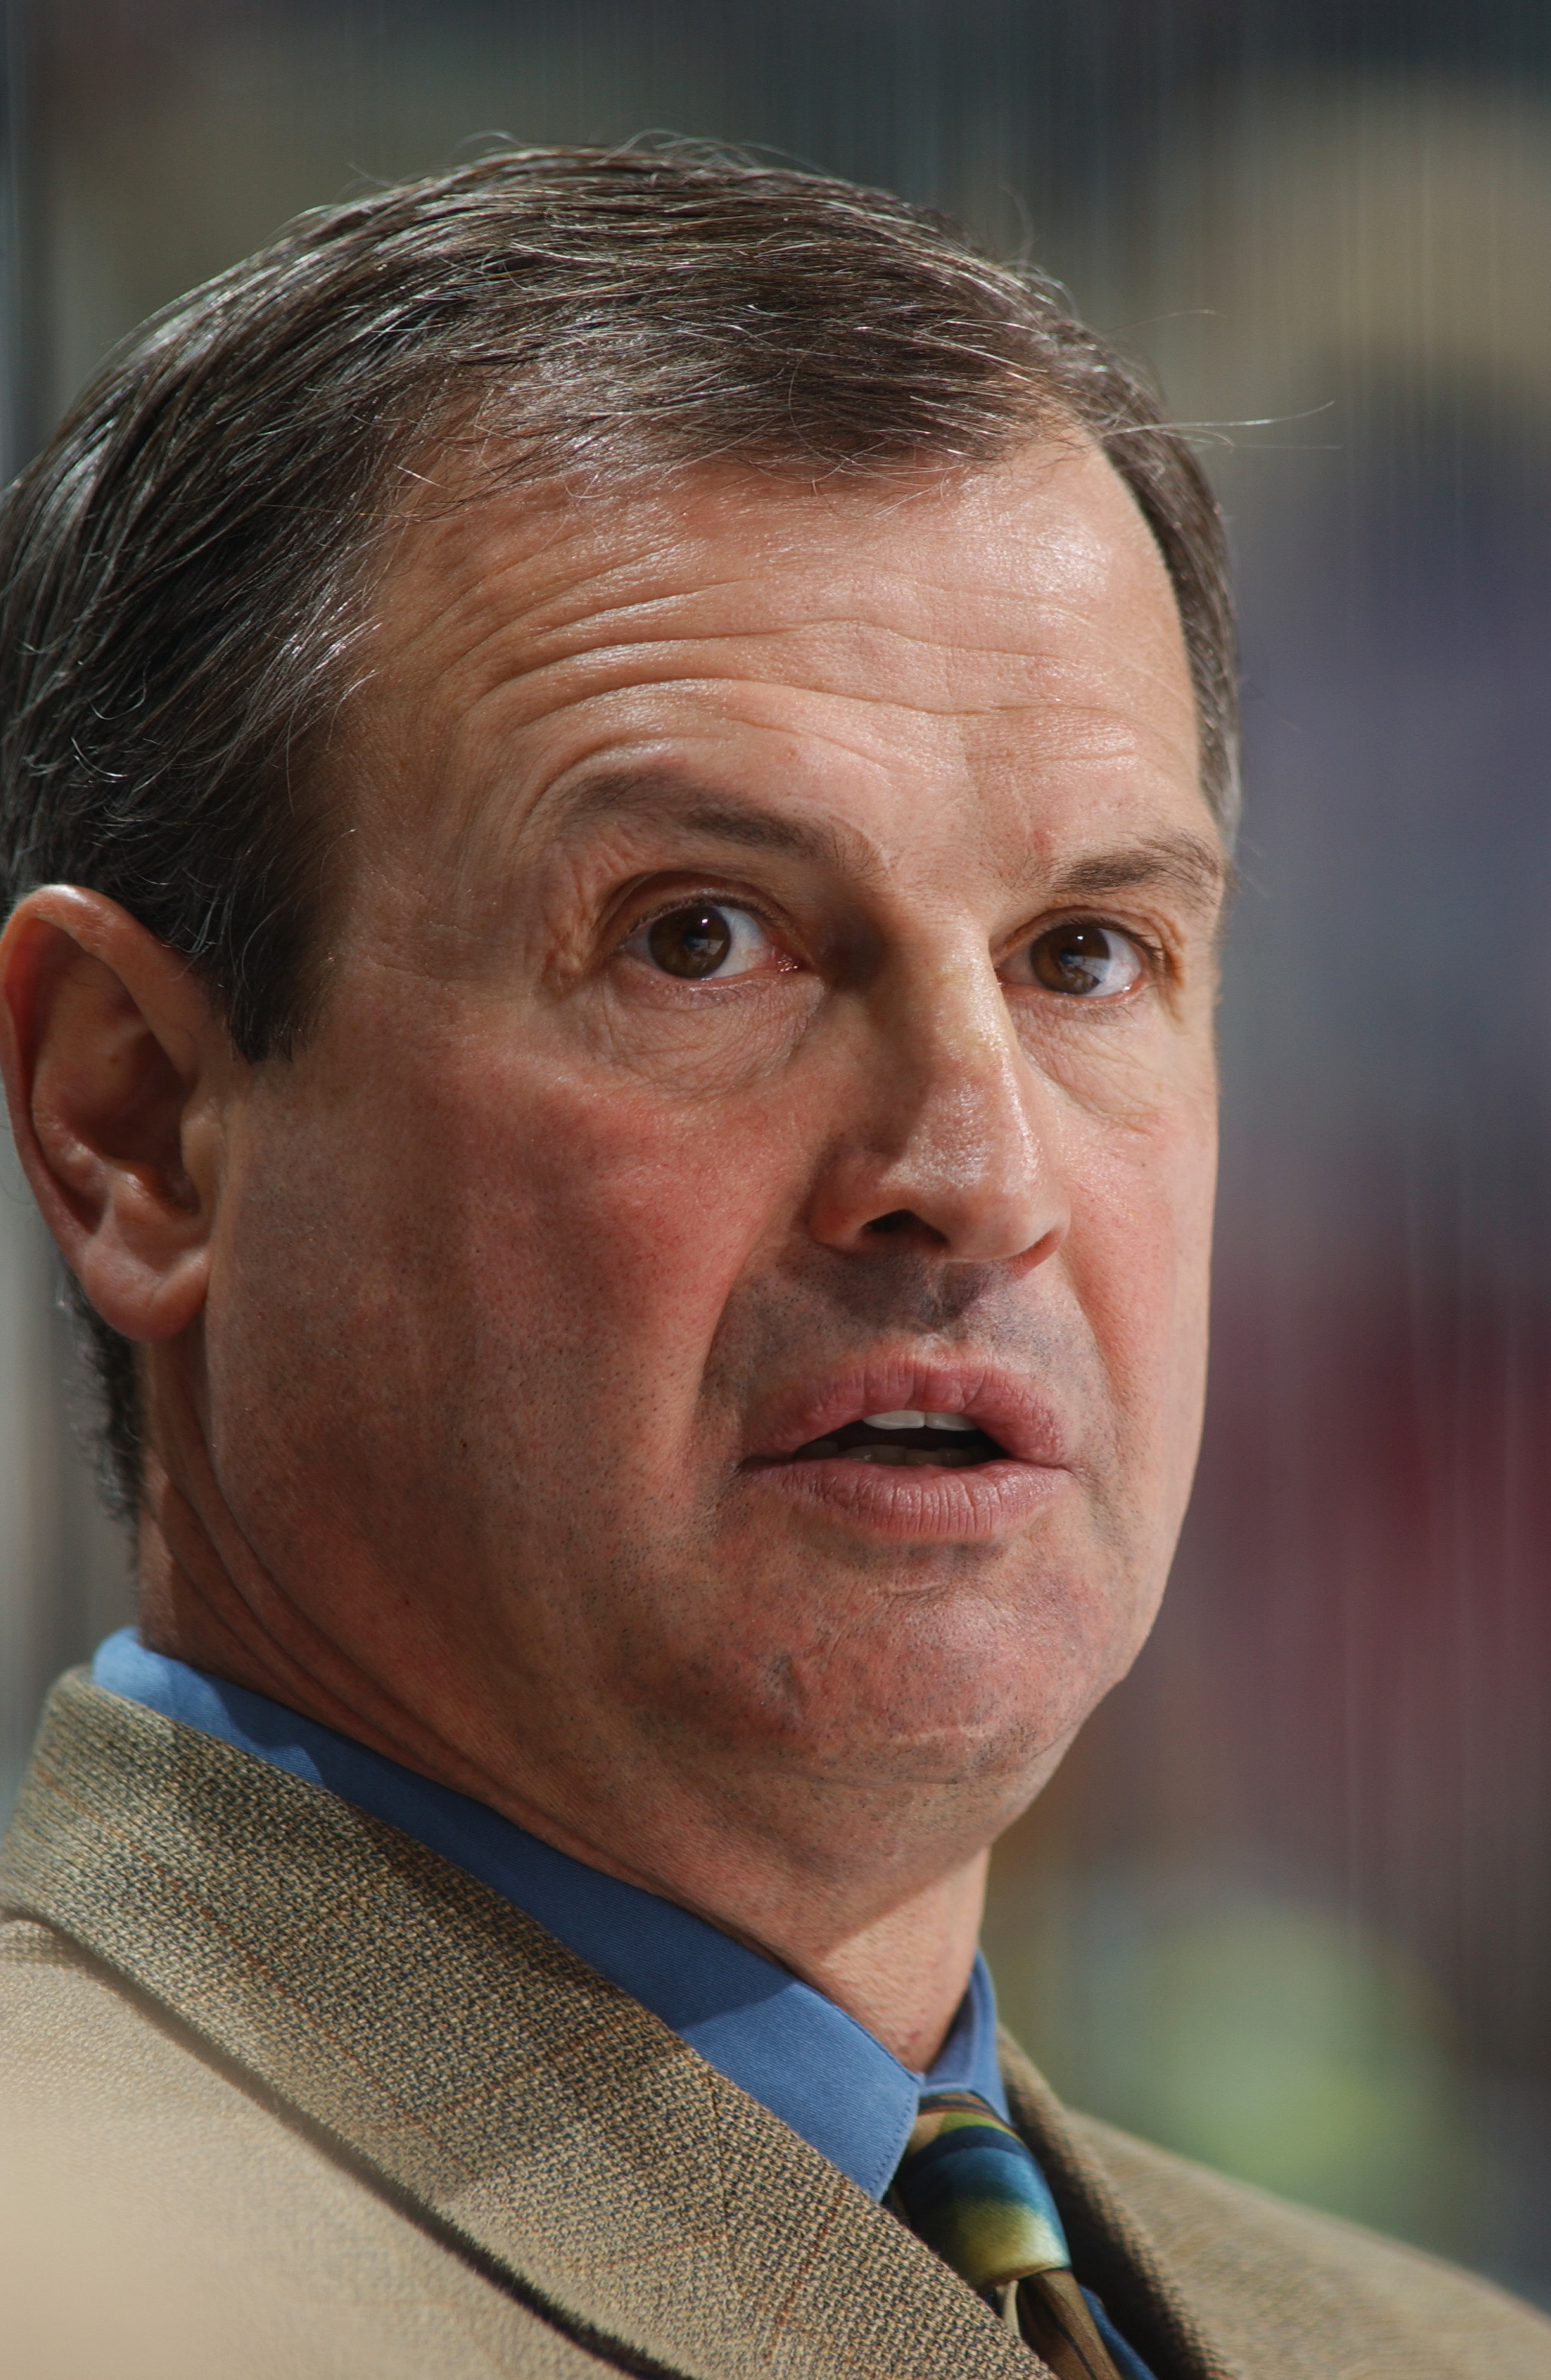 ATLANTA - OCTOBER 18:  Head coach Brian Sutter of the Chicago Blackhawks watches the game against his Atlanta Thrashers at Philips Arena on October 18, 2003 in Atlanta, Georgia.  The Thrashers defeated the Blackhawks 7-2.  (Photo by Scott Cunningham/Getty